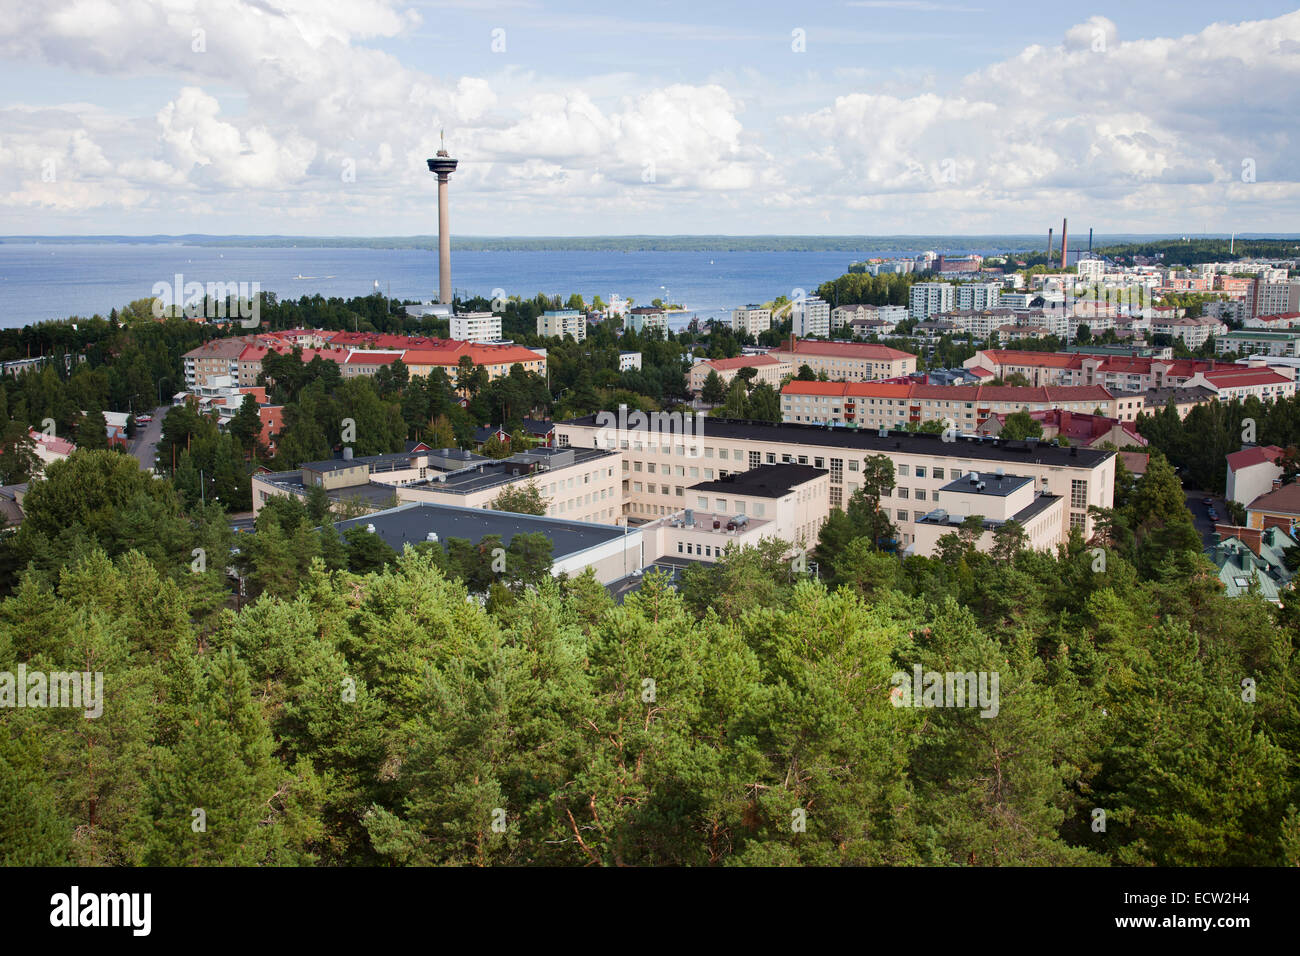 panoramic view from the observation tower, tampere, finland, europe - Stock Image